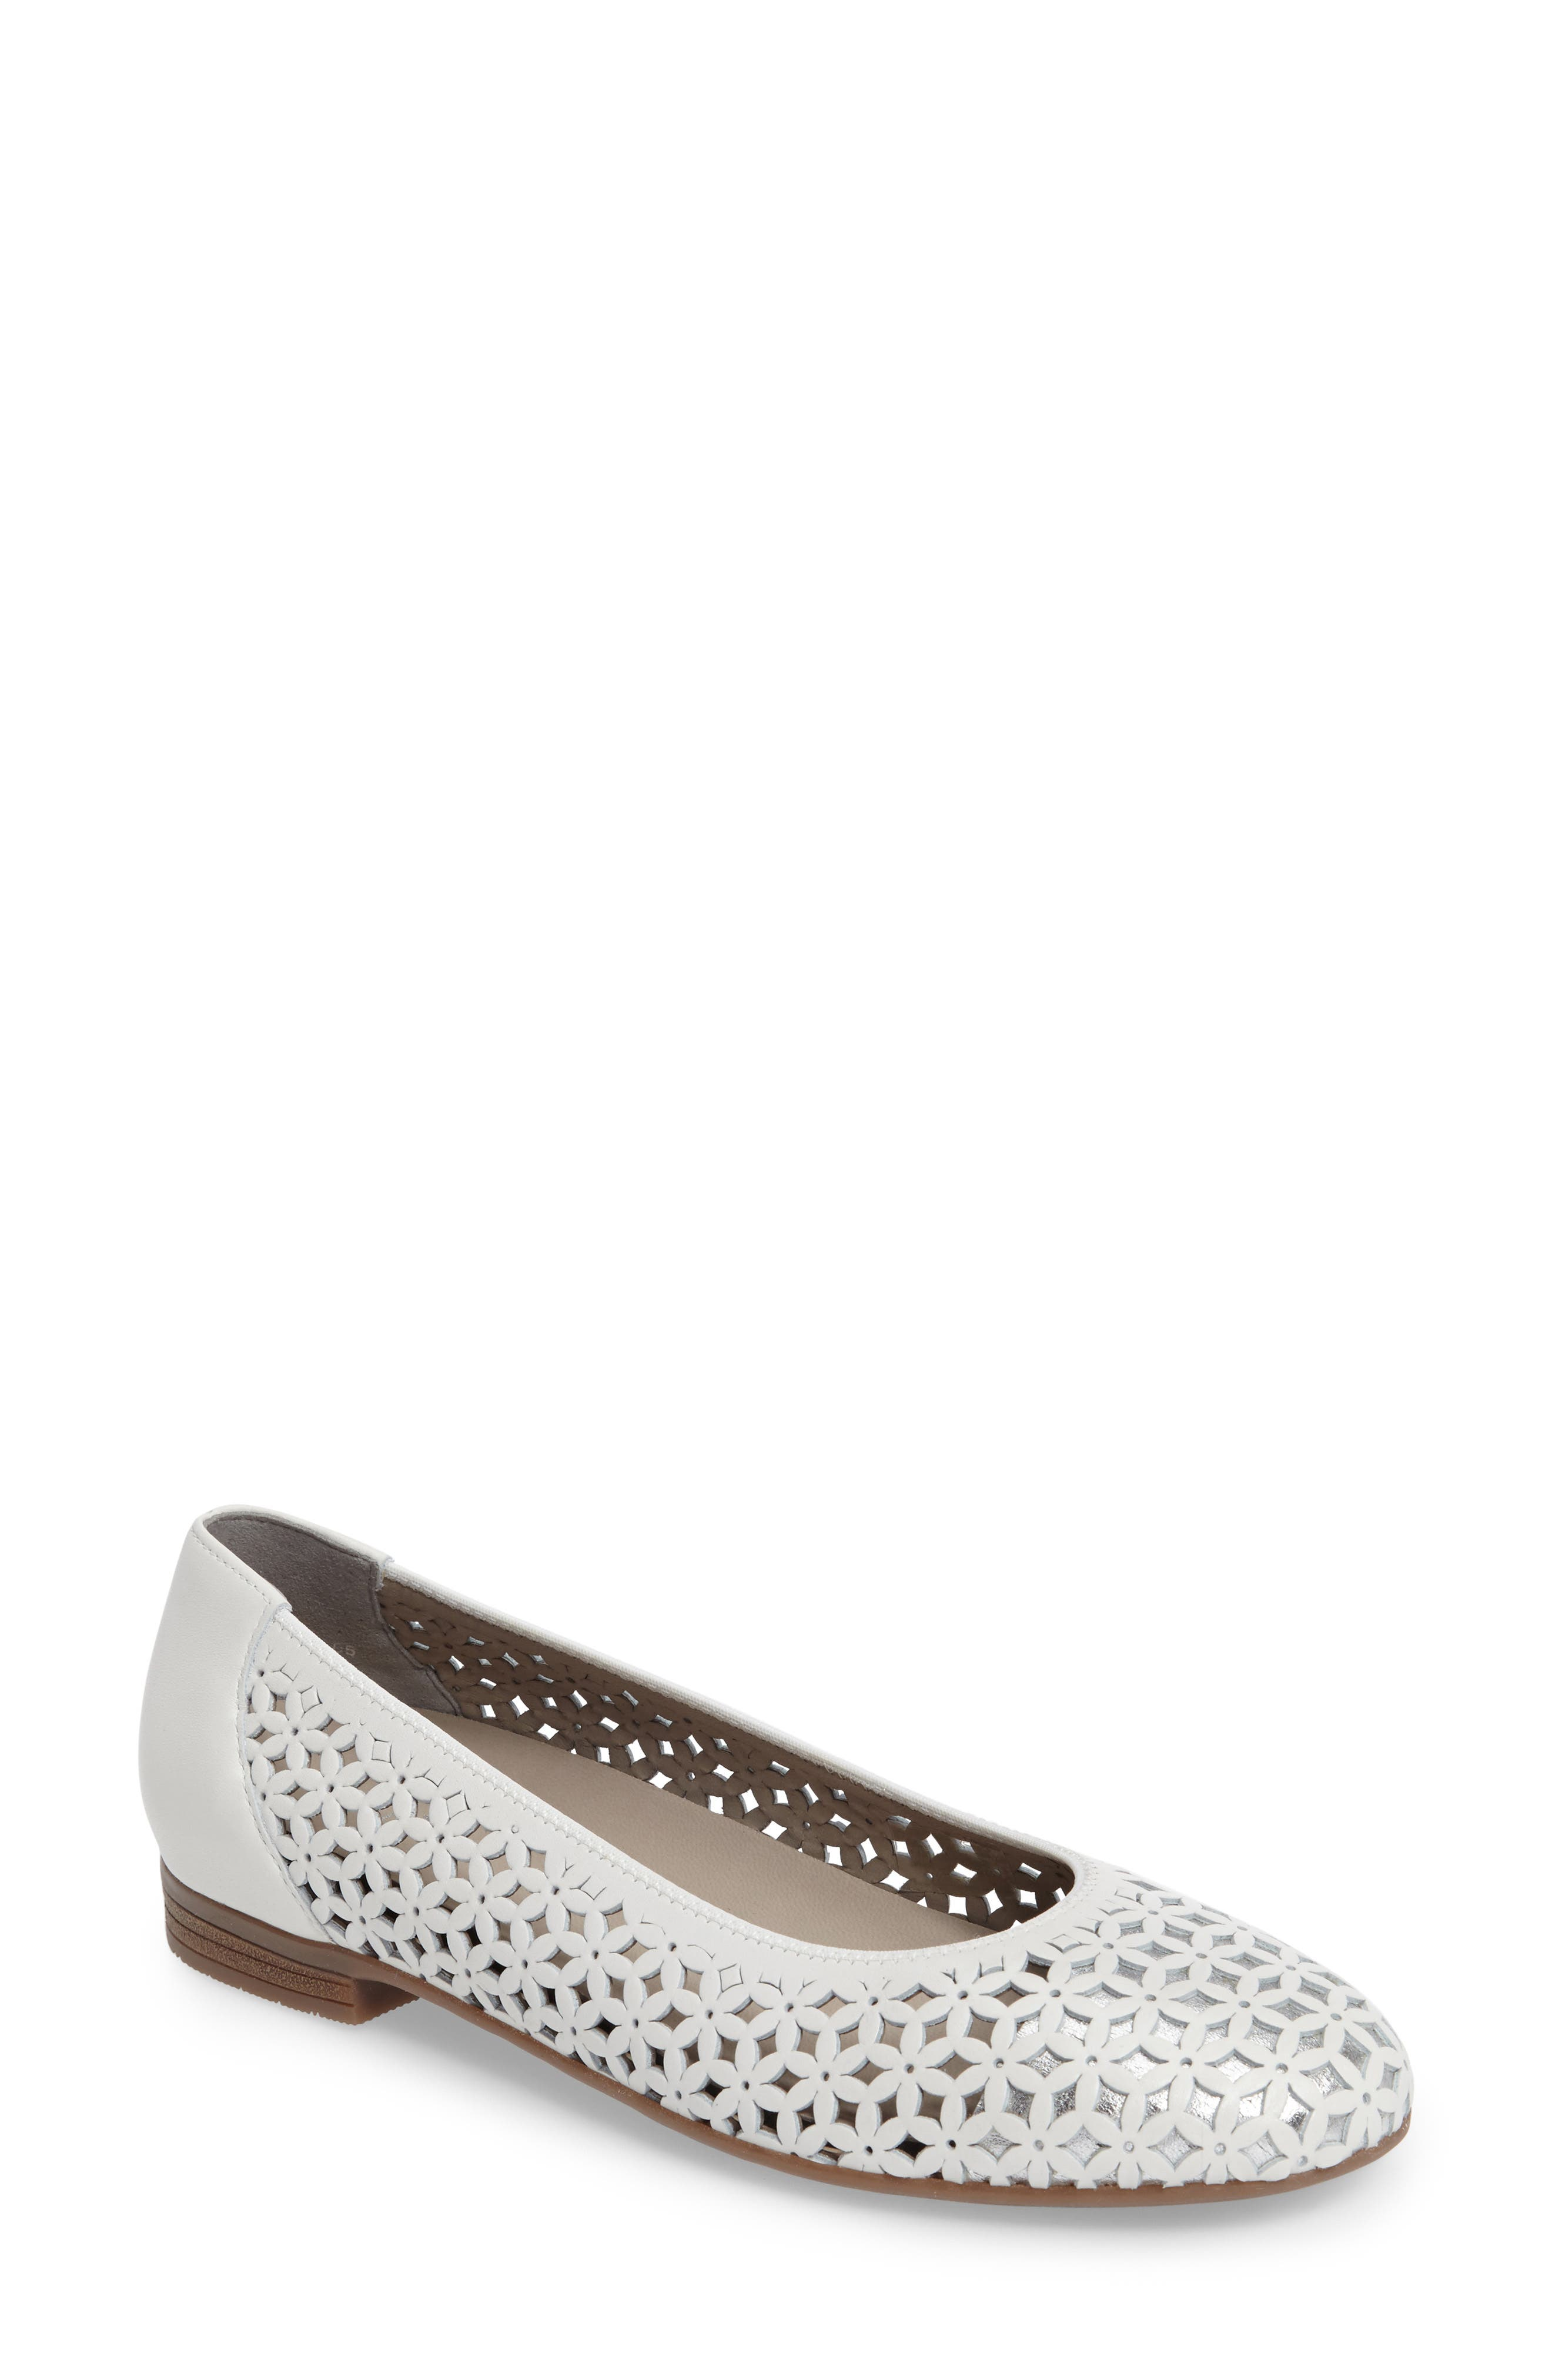 Stephanie Perforated Ballet Flat,                             Main thumbnail 1, color,                             101